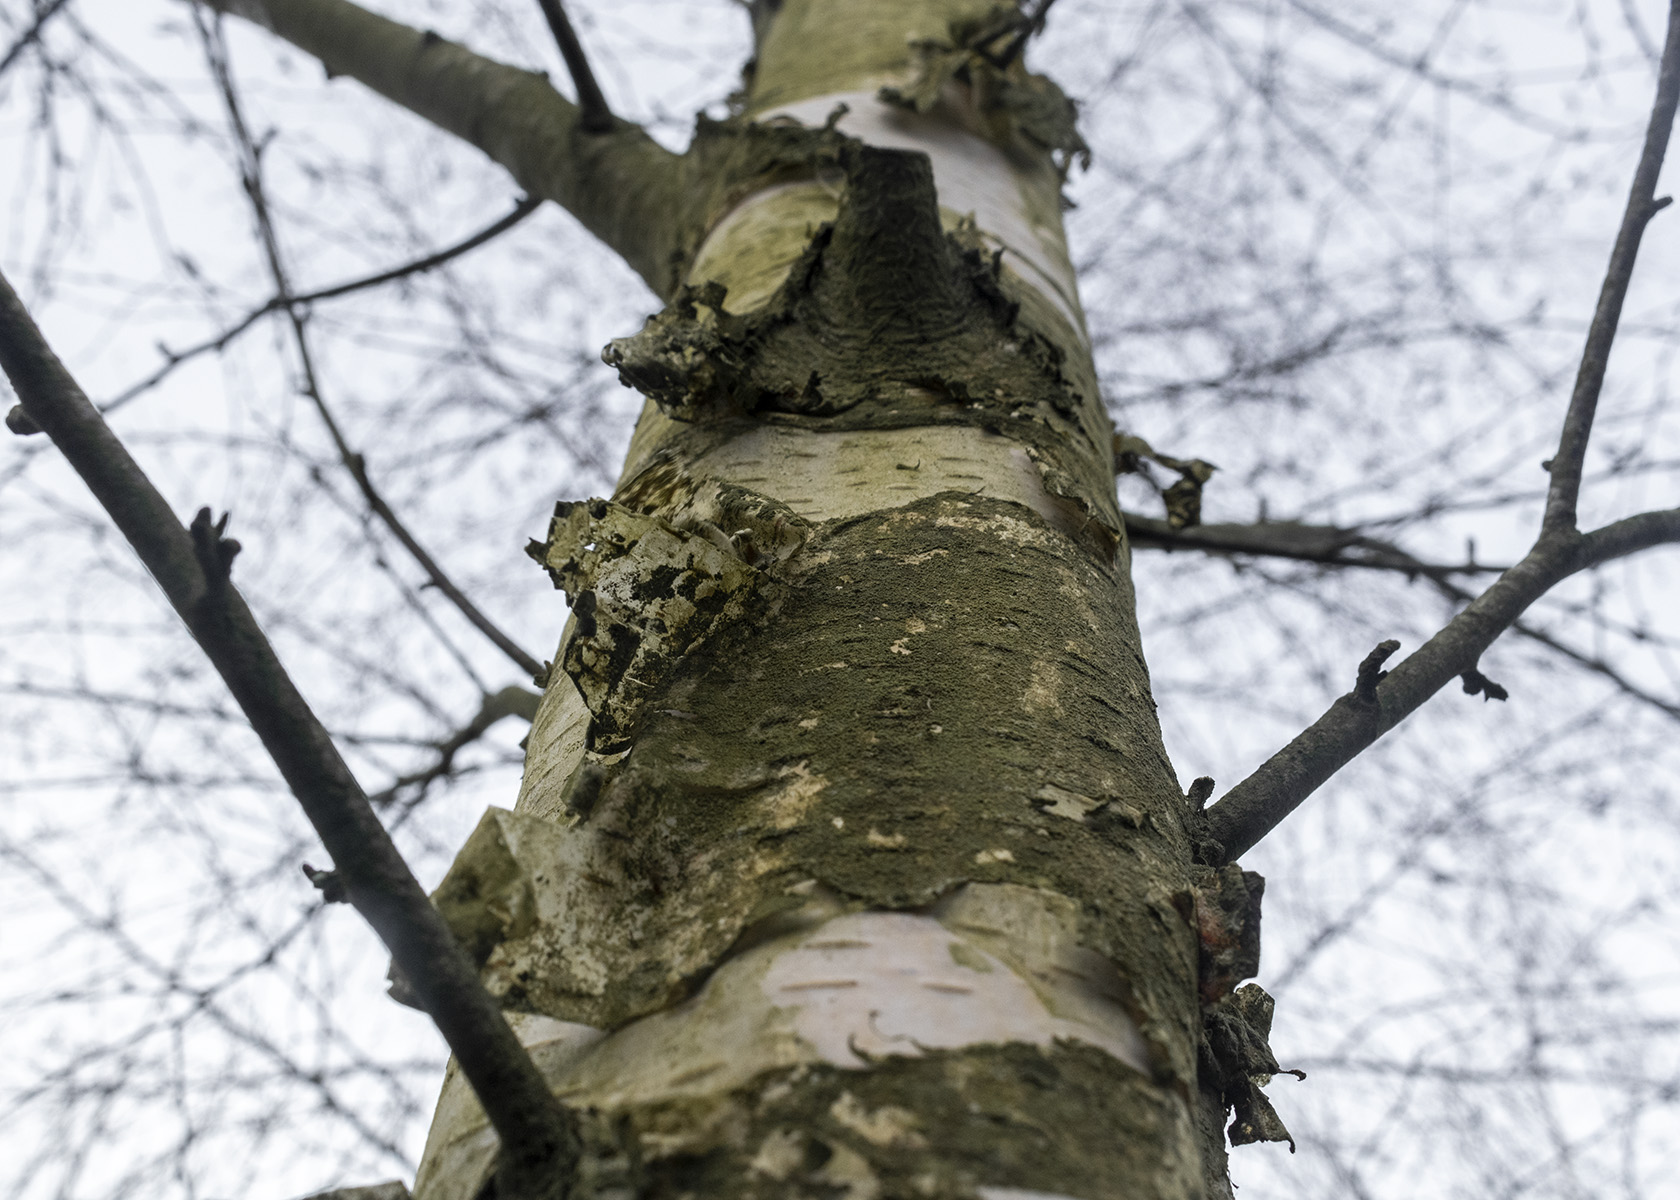 Bark peeling from a leafless Silver Birch tree at Quaker Wood